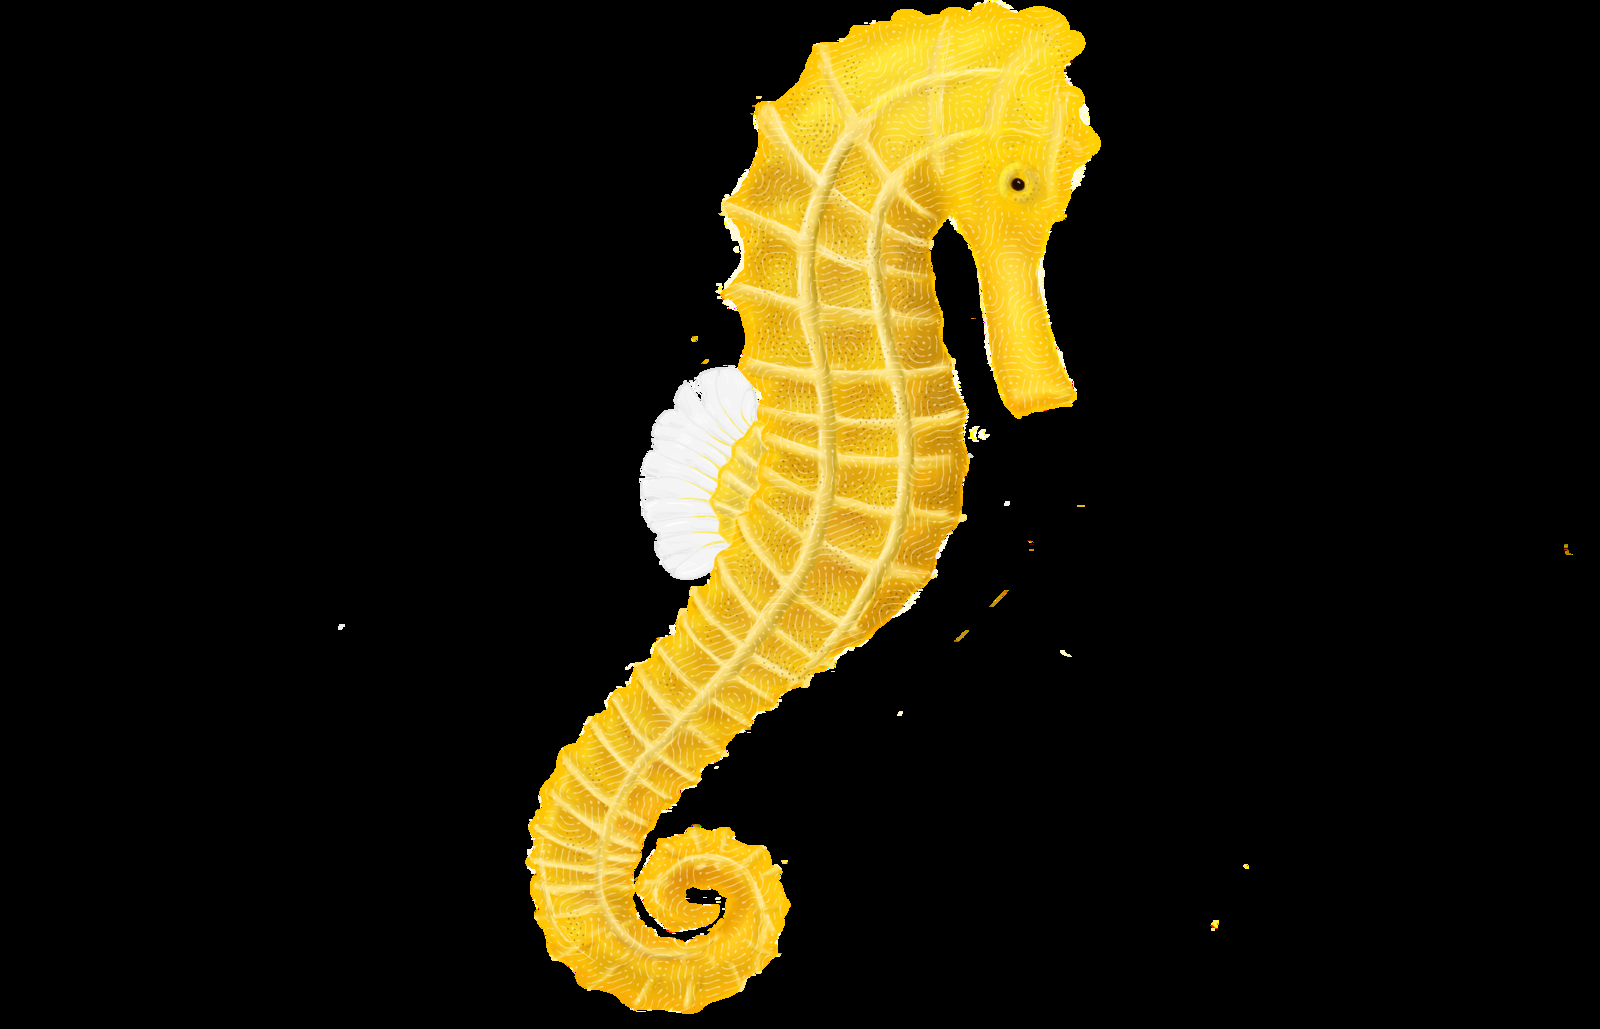 Seahorse Pictures Kids Search